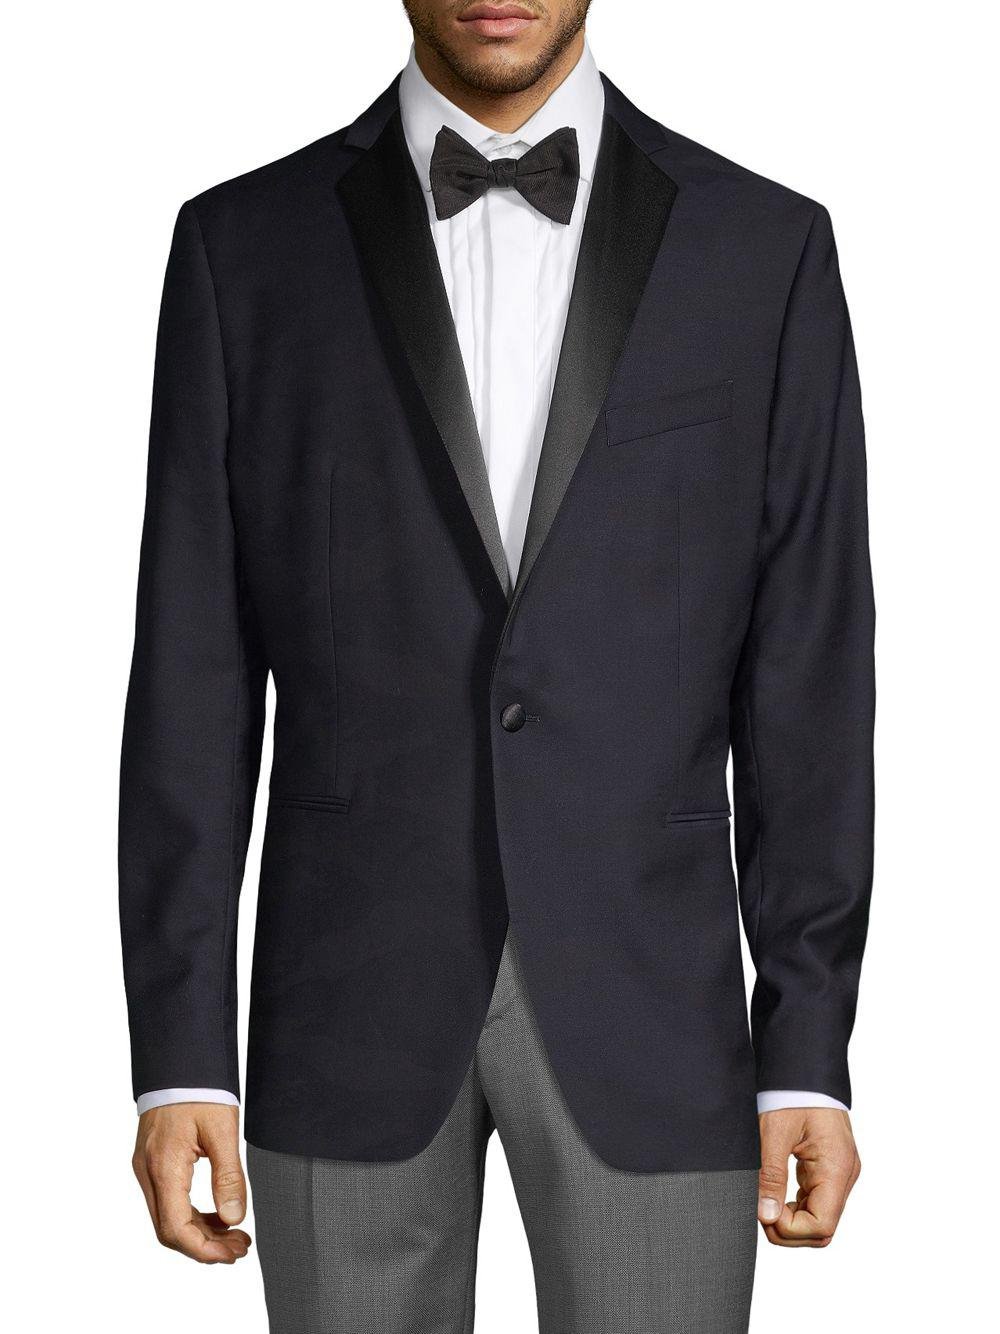 fd4cdd77ffc4a Lyst - John Varvatos Basic Wool Dinner Jacket in Black for Men